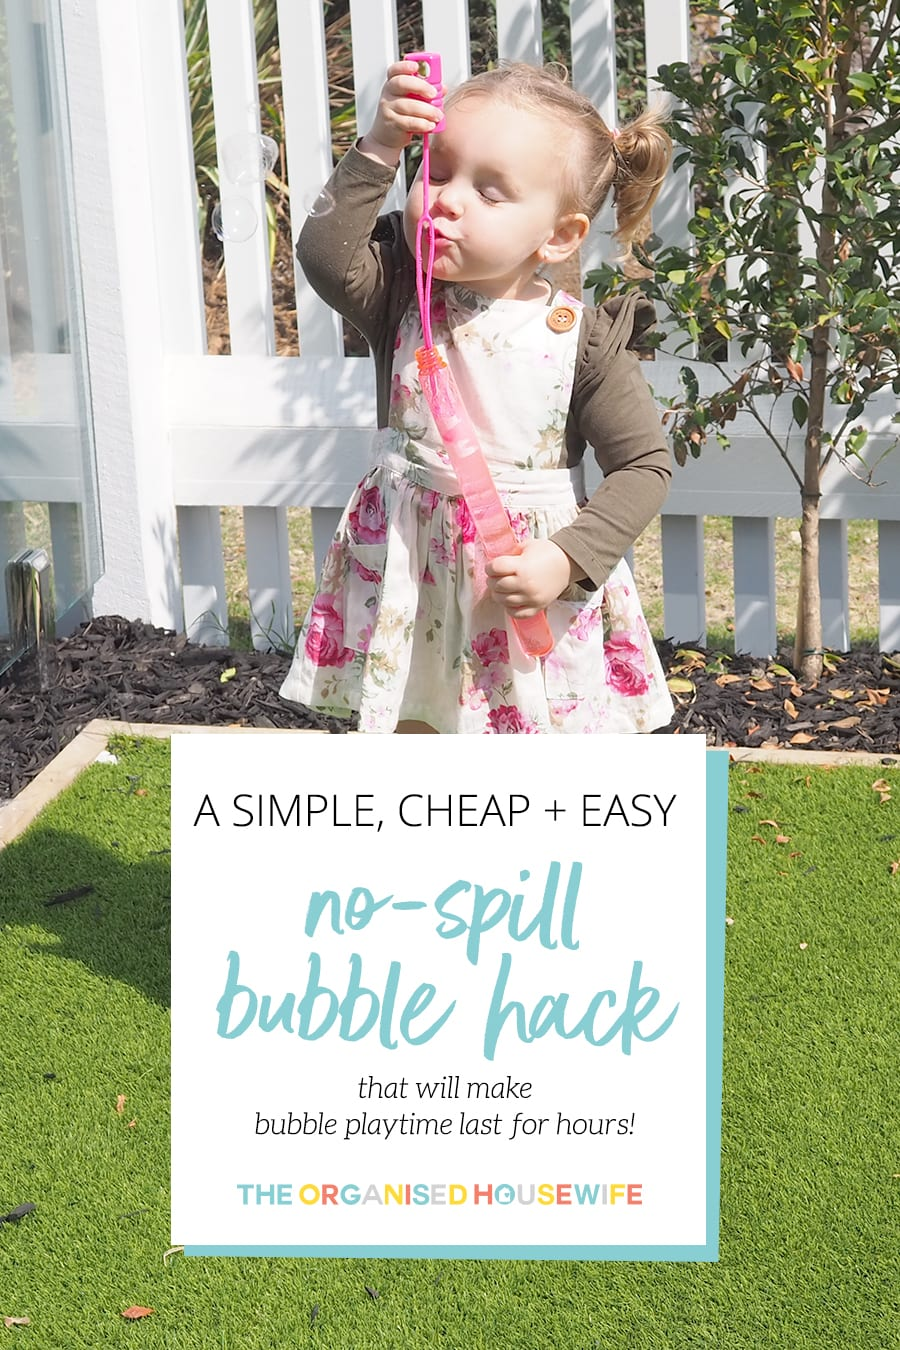 No spill bubble hack for parents that is simple cheap and easy